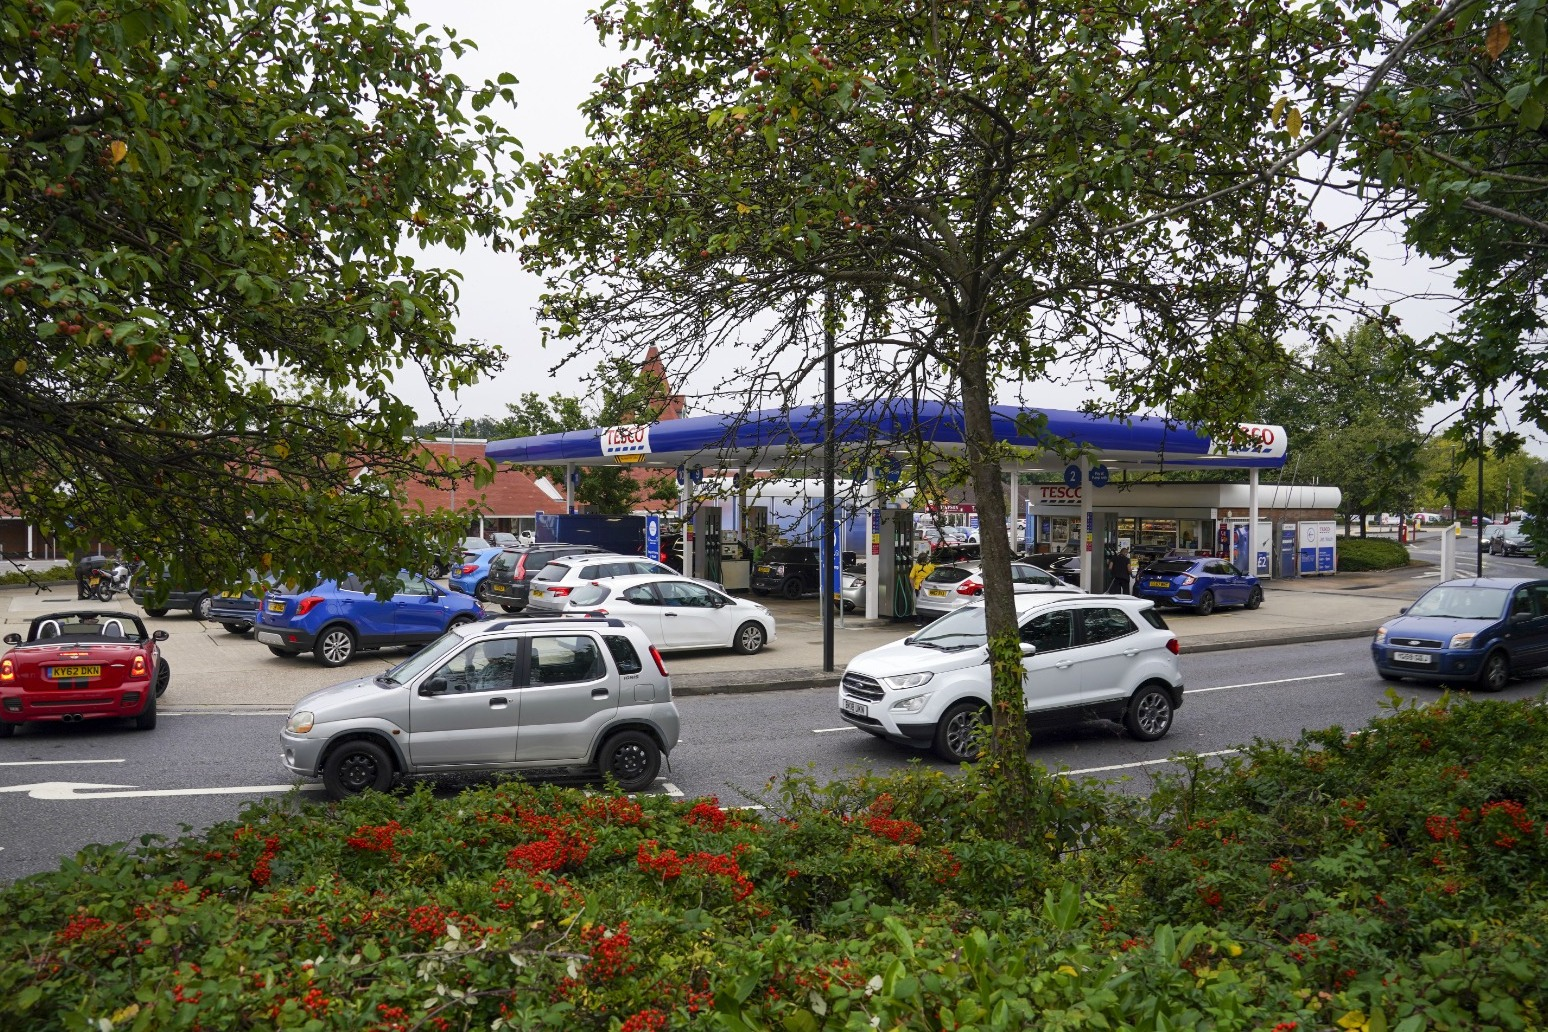 Panic-buying causing fuel shortages, not supply chain issues, AA head says